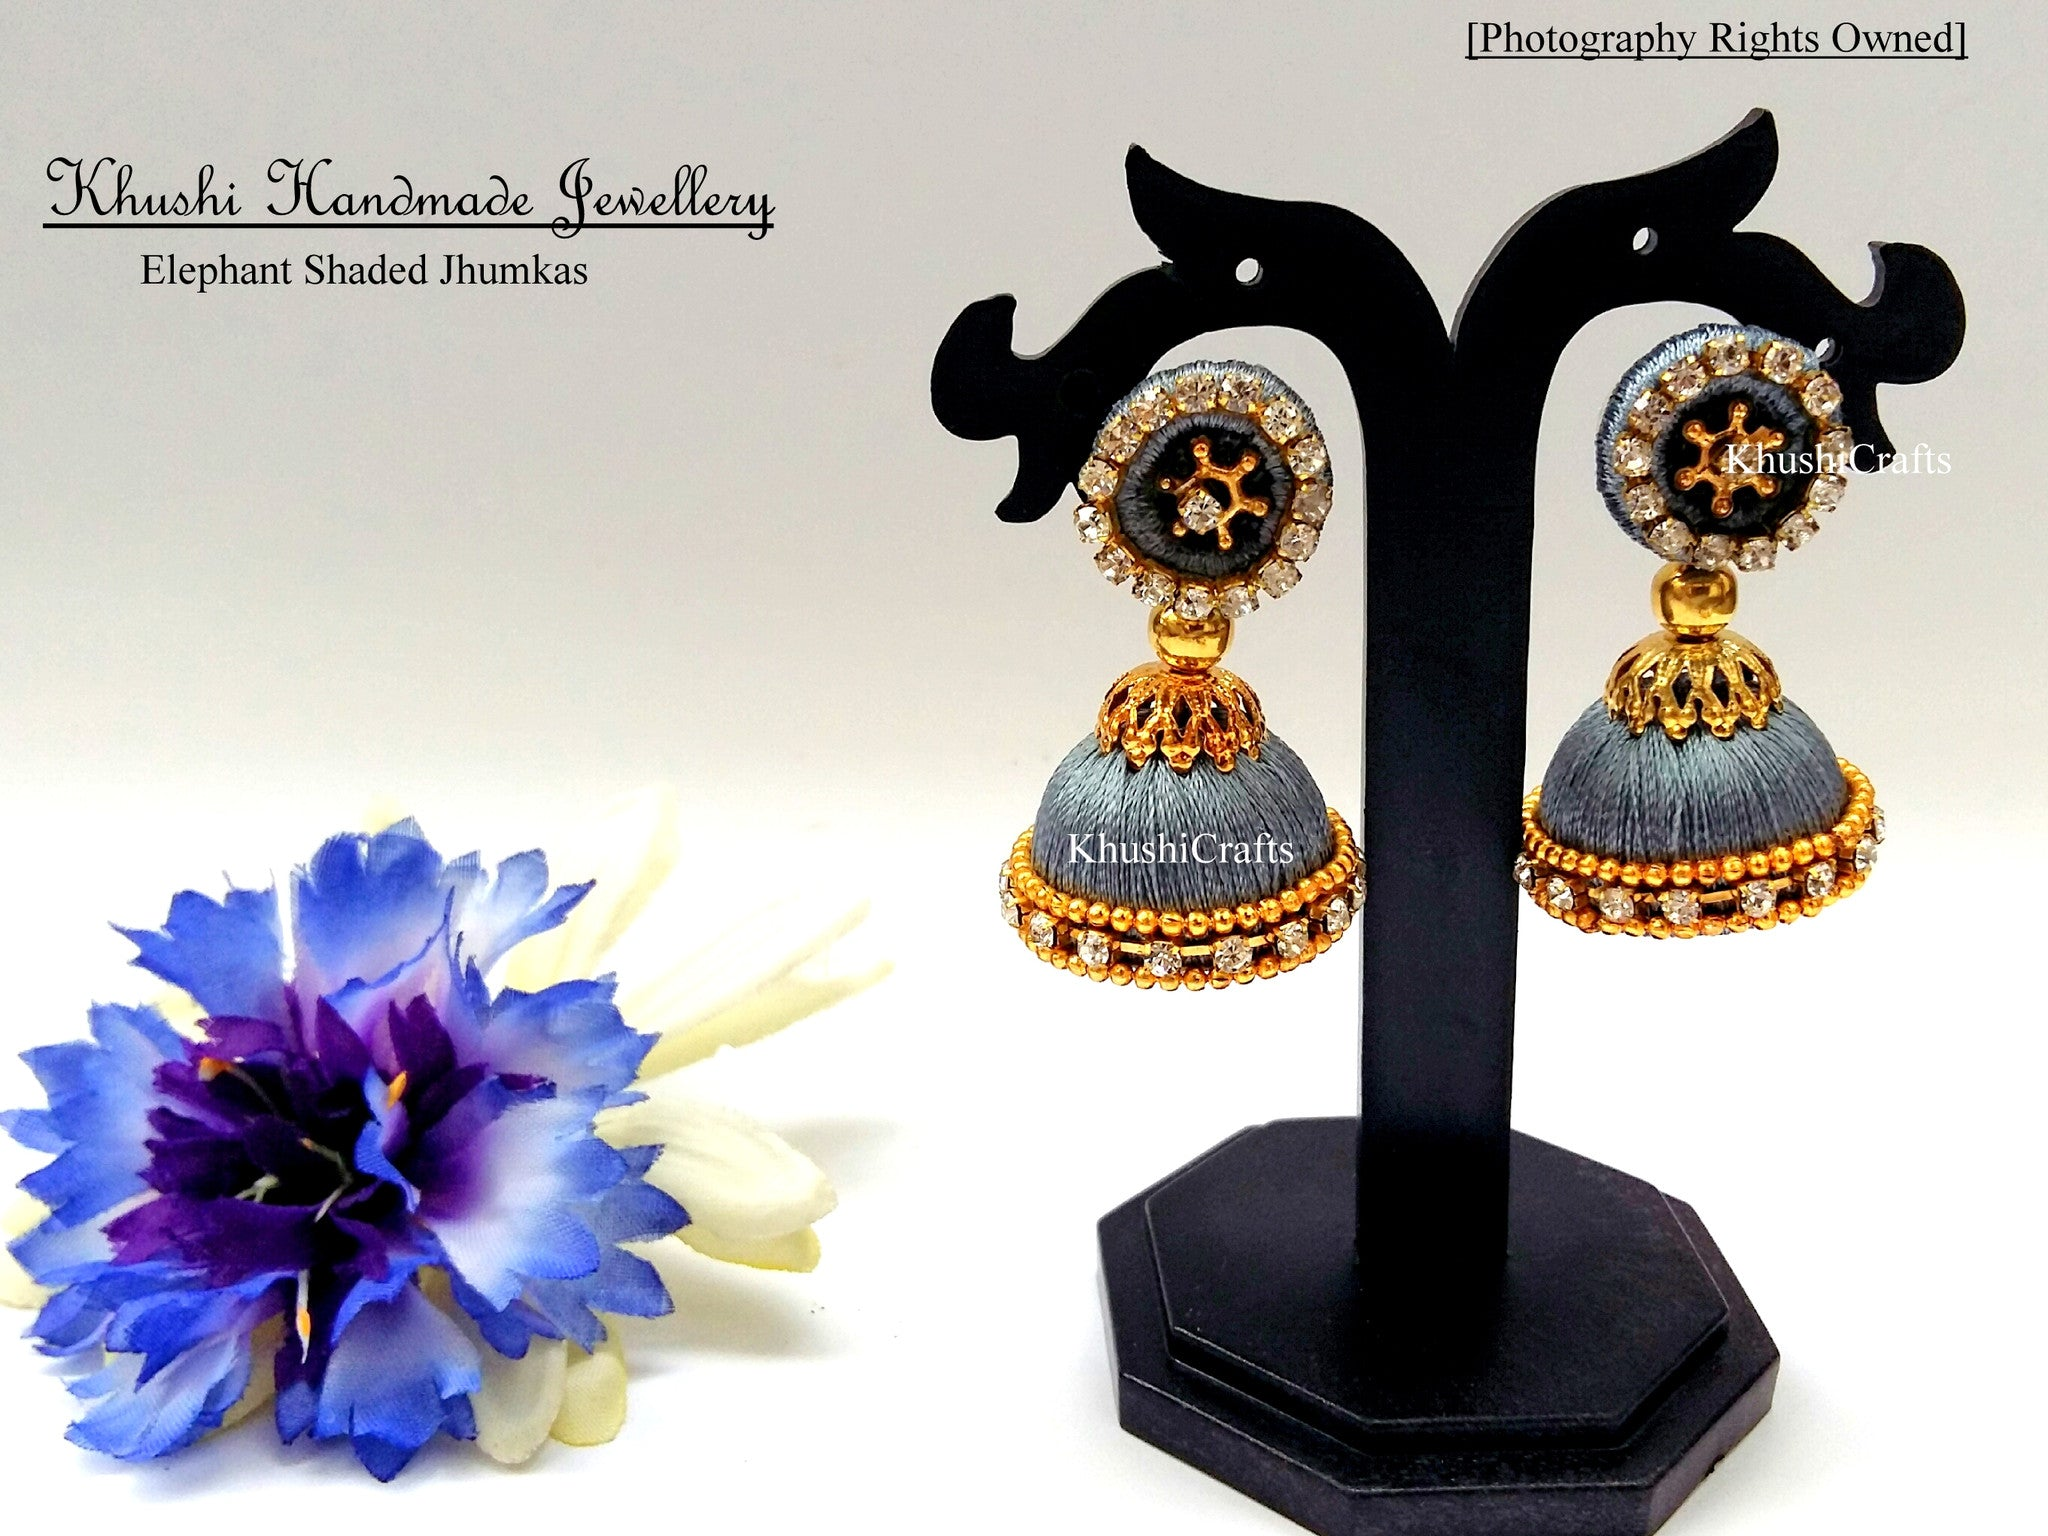 Elephant shaded Jhumkas - Khushi Handmade Jewellery